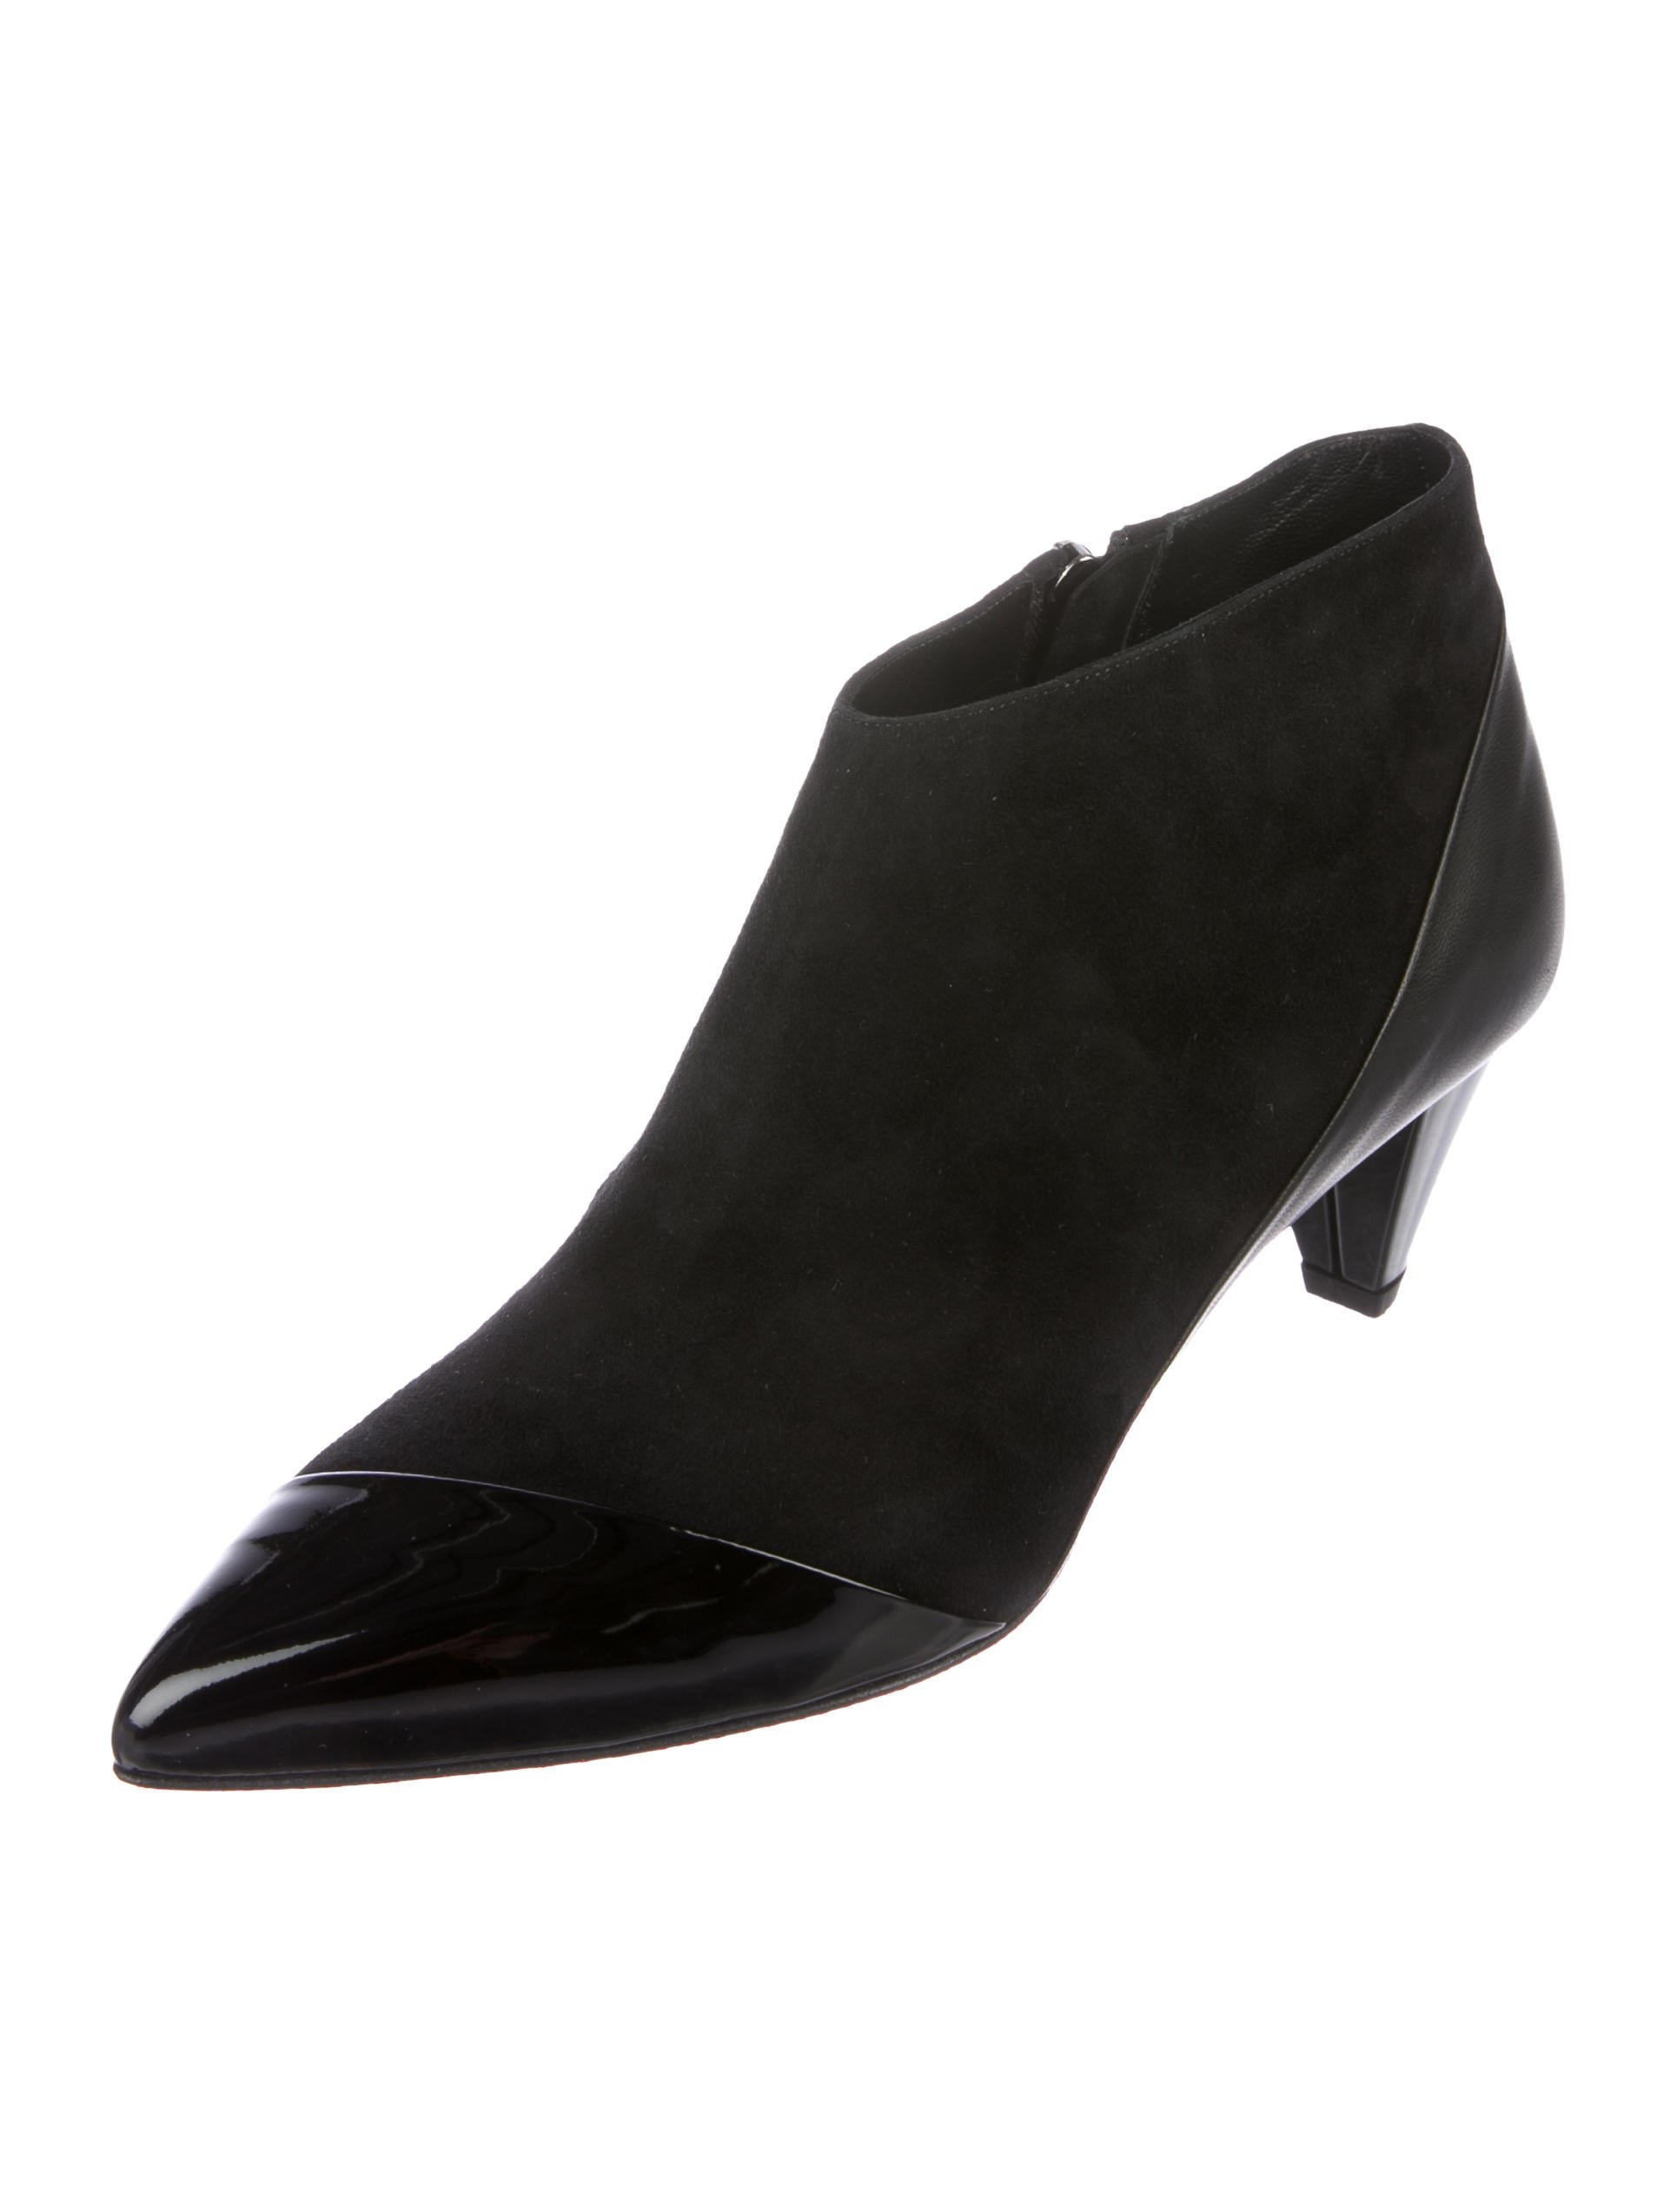 best store to get online Charline De Luca Yes Suede Boots w/ Tags cheap sale buy sale with mastercard cost cheap price 2014 newest cheap price qQhn6O